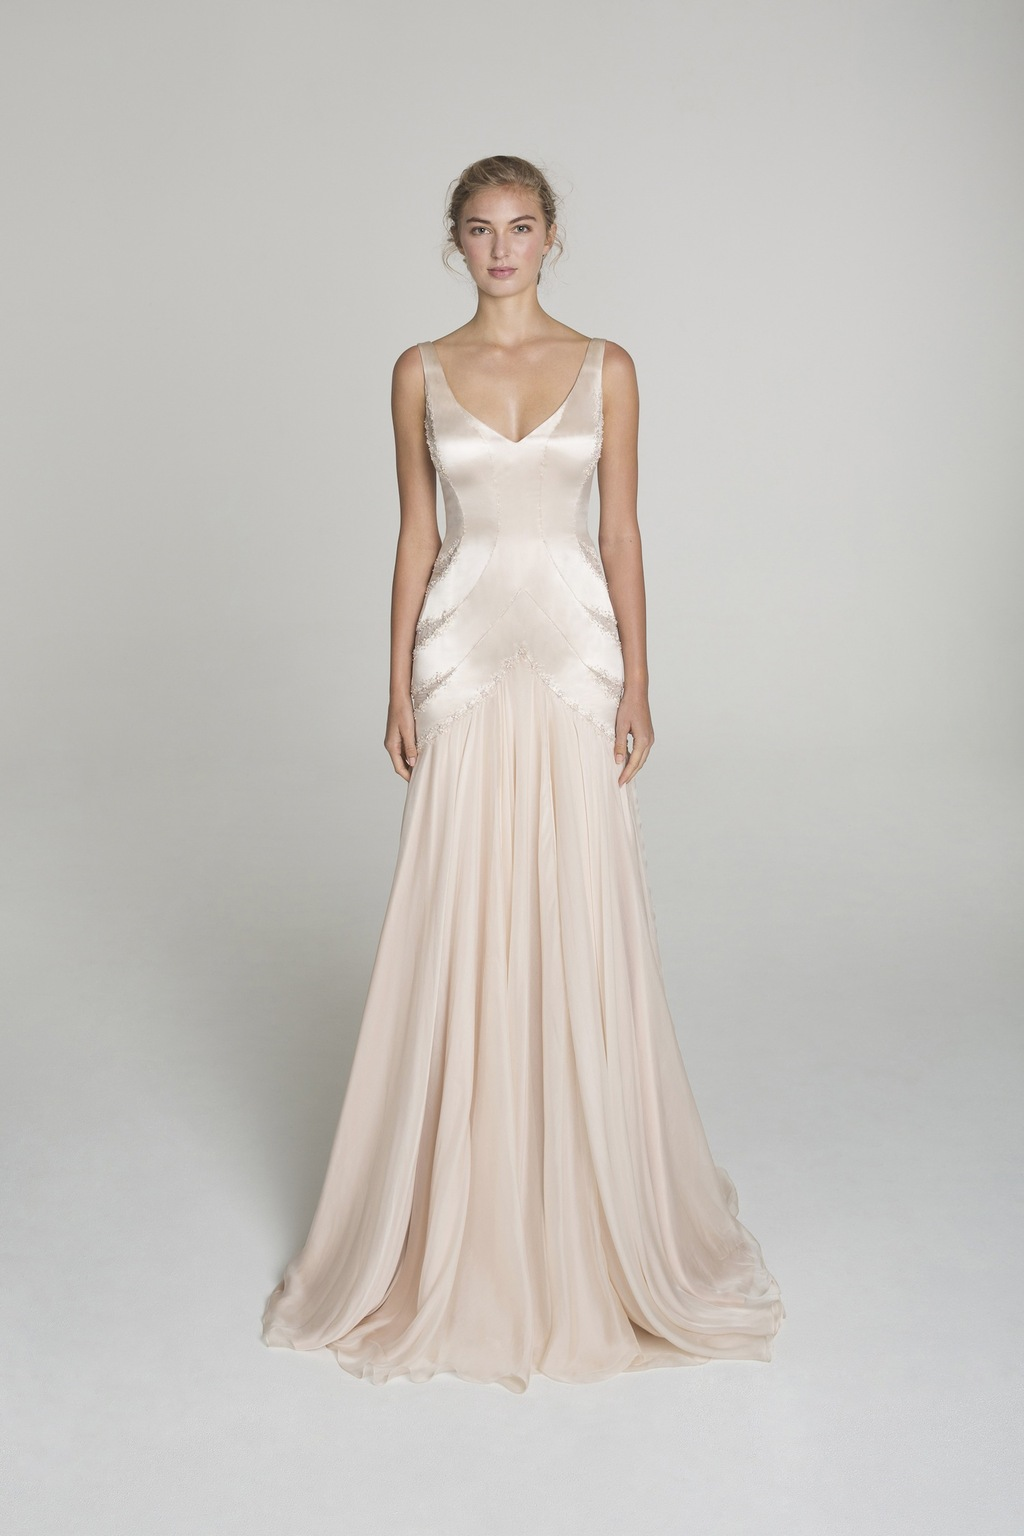 Blush_wedding_dress_from_alana_aoun.full